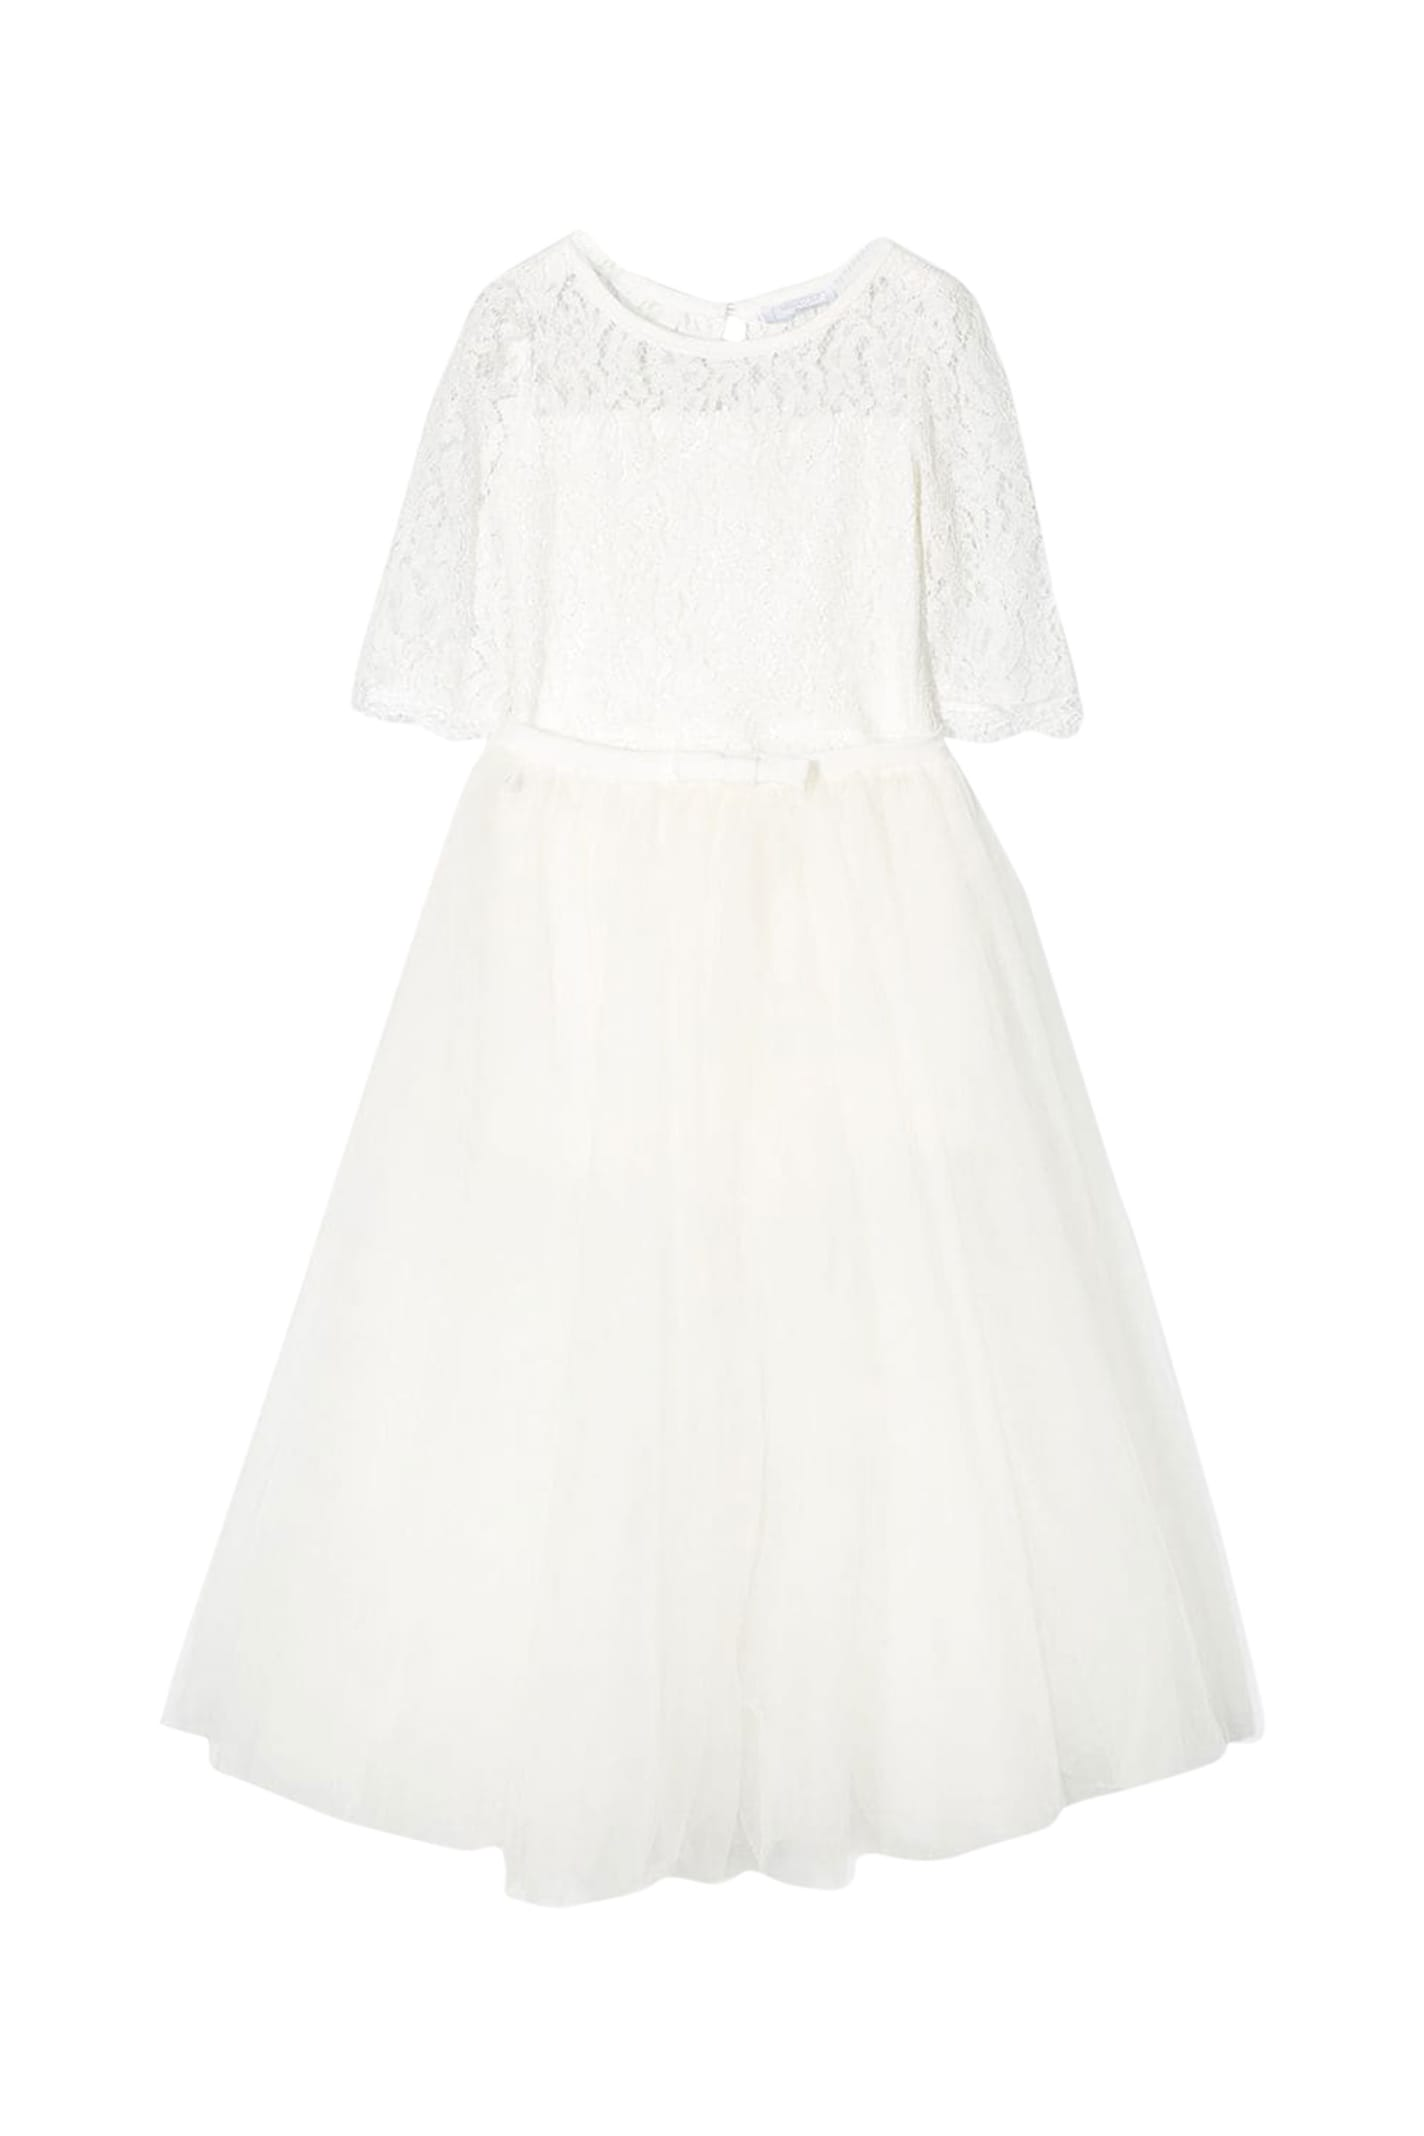 Buy Monnalisa Dress With Lace online, shop Monnalisa with free shipping